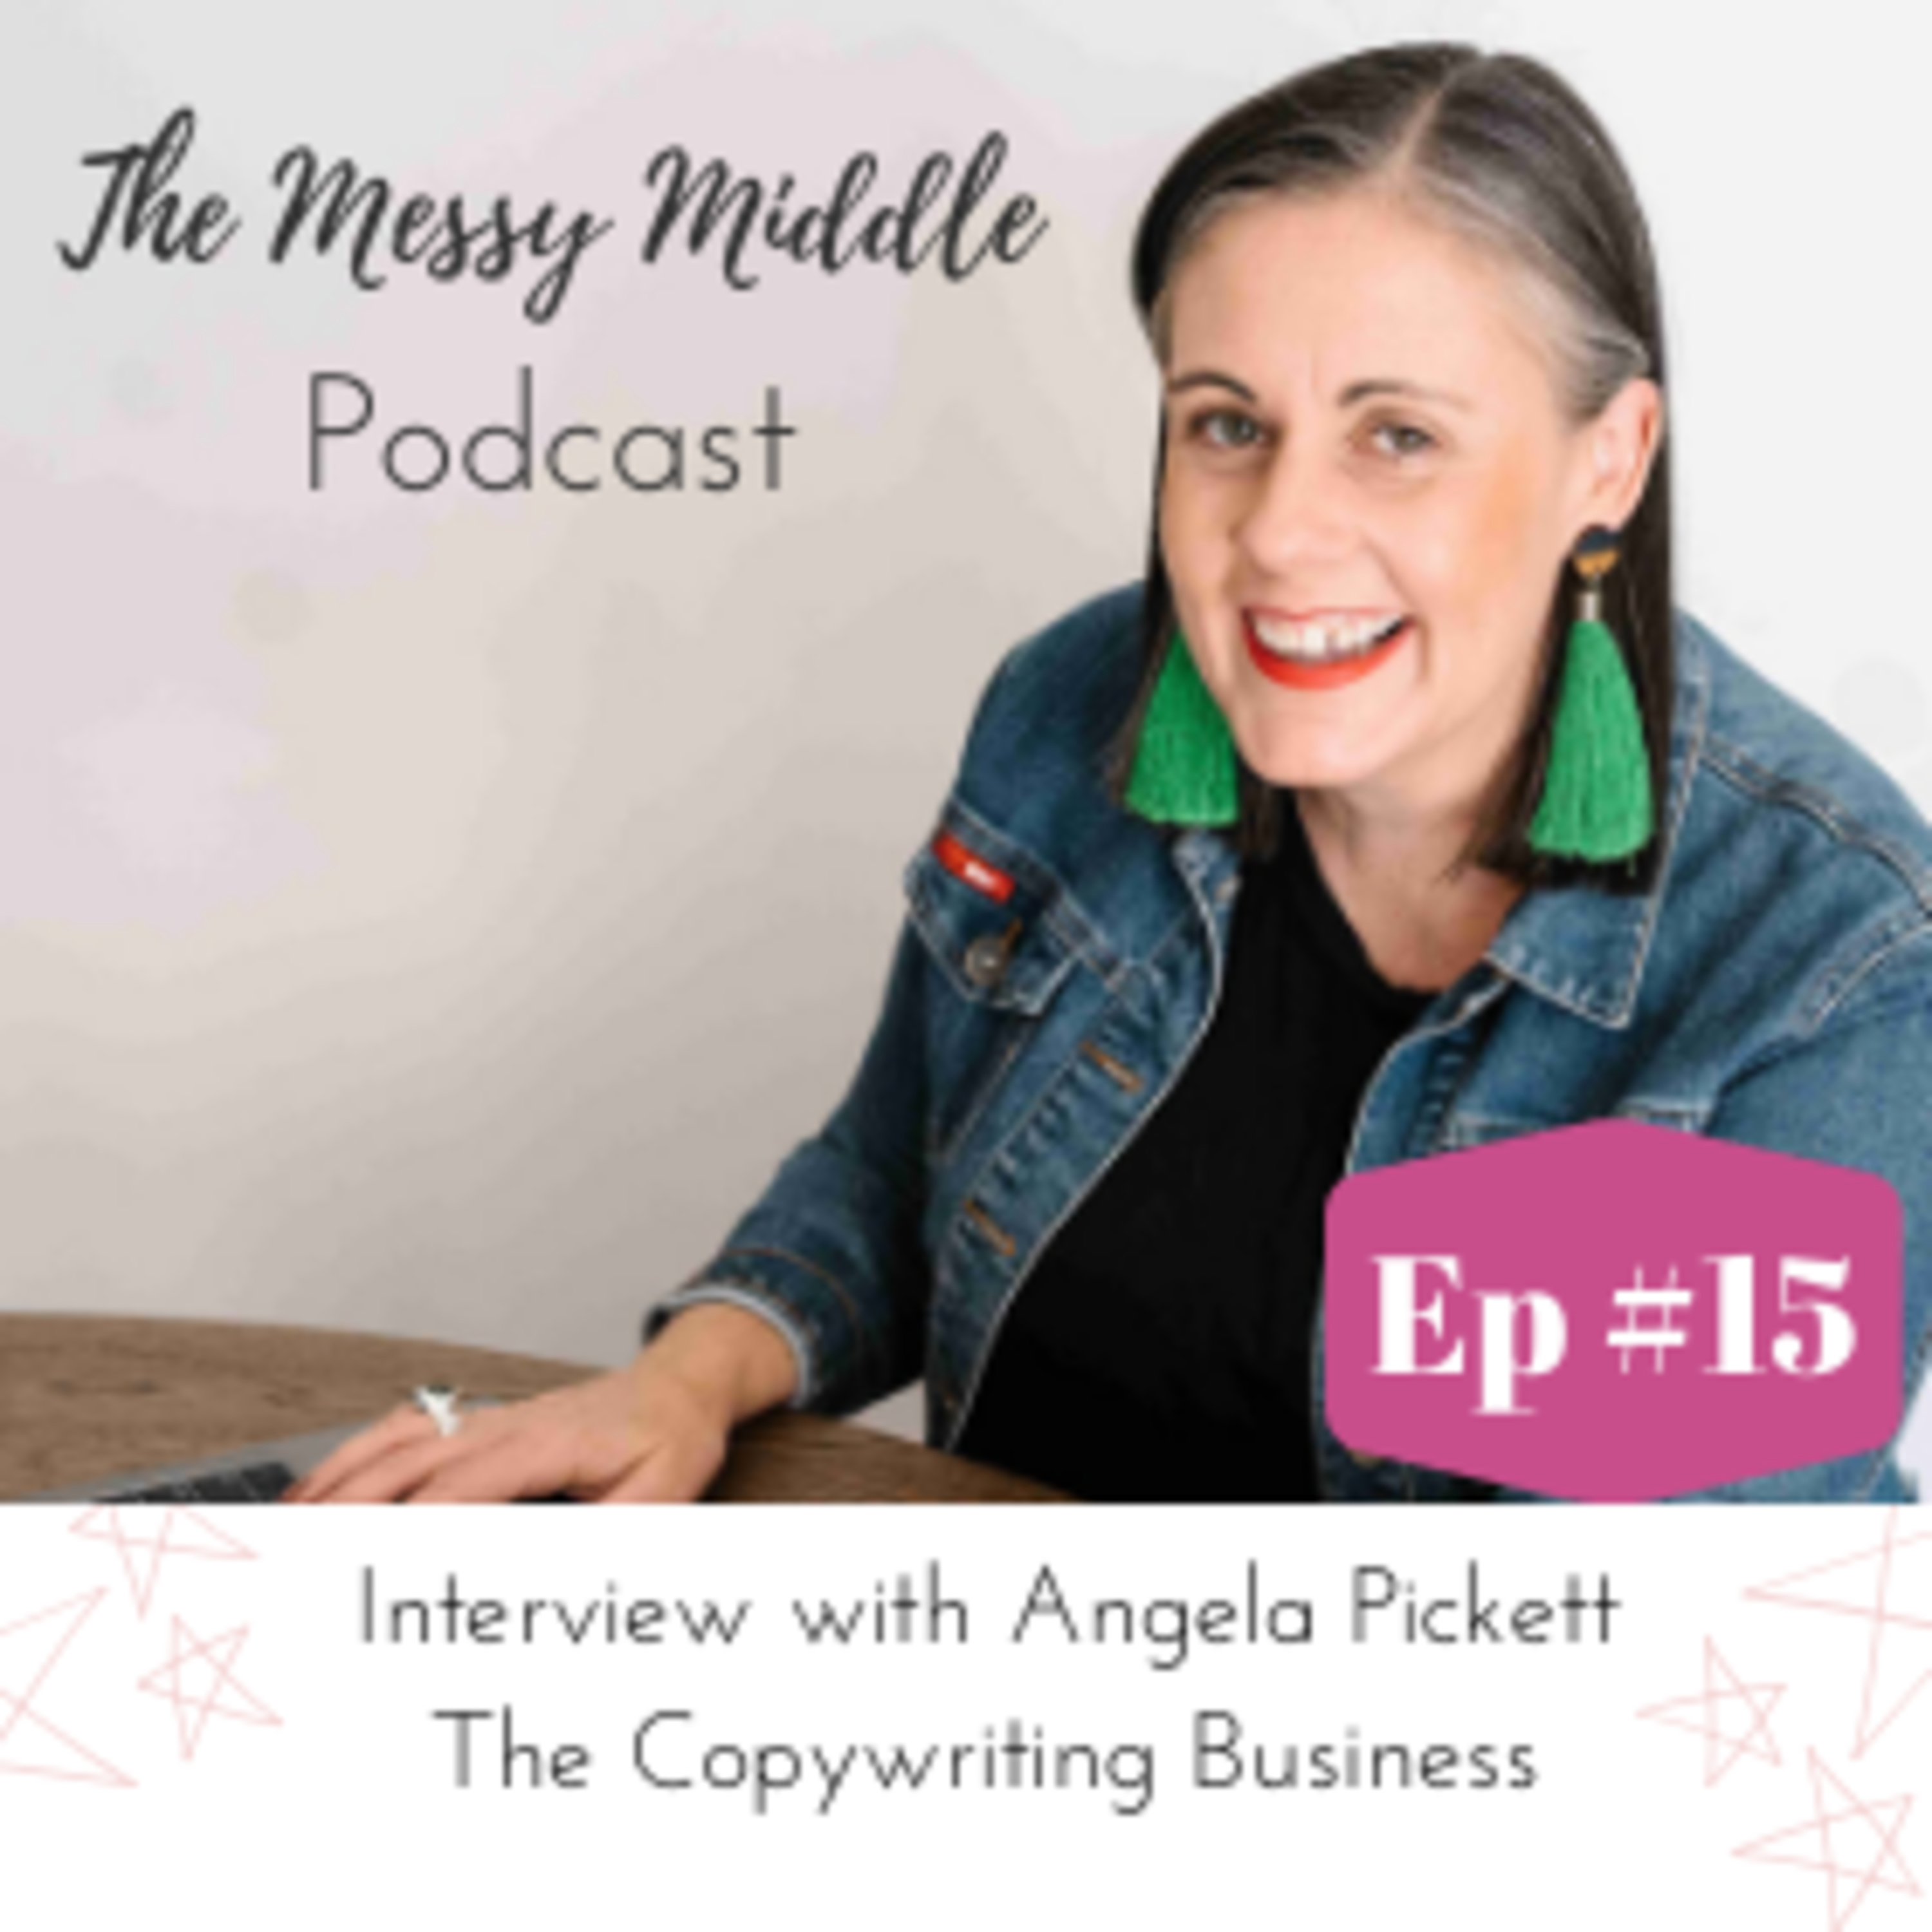 #15 Interview with Angela Pickett - The Copywriting Business